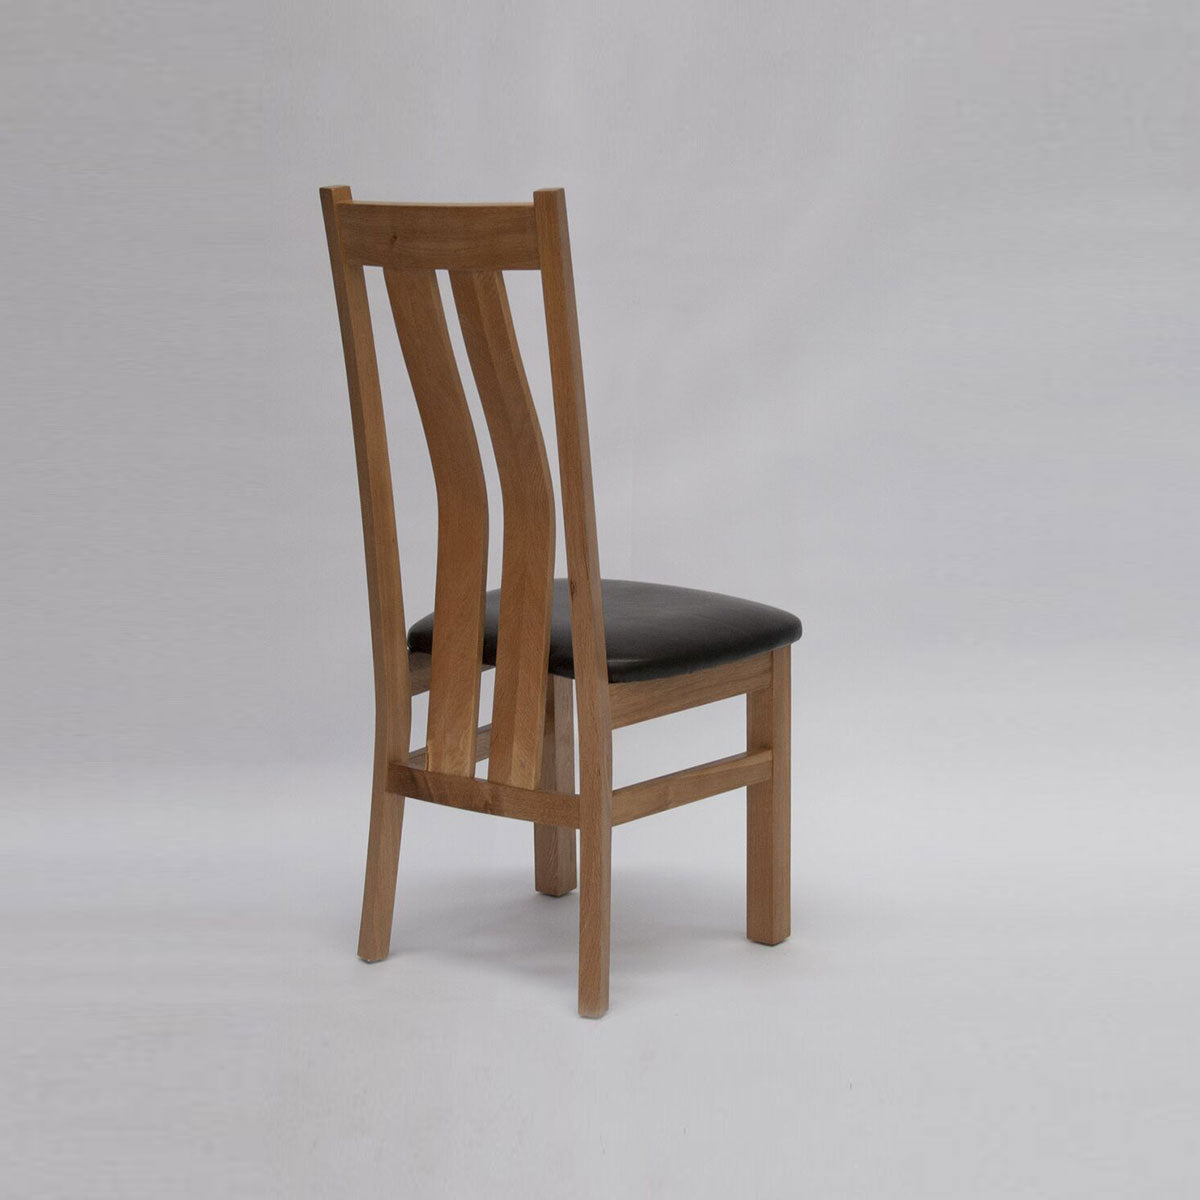 VERMARIA OAK CHAIR